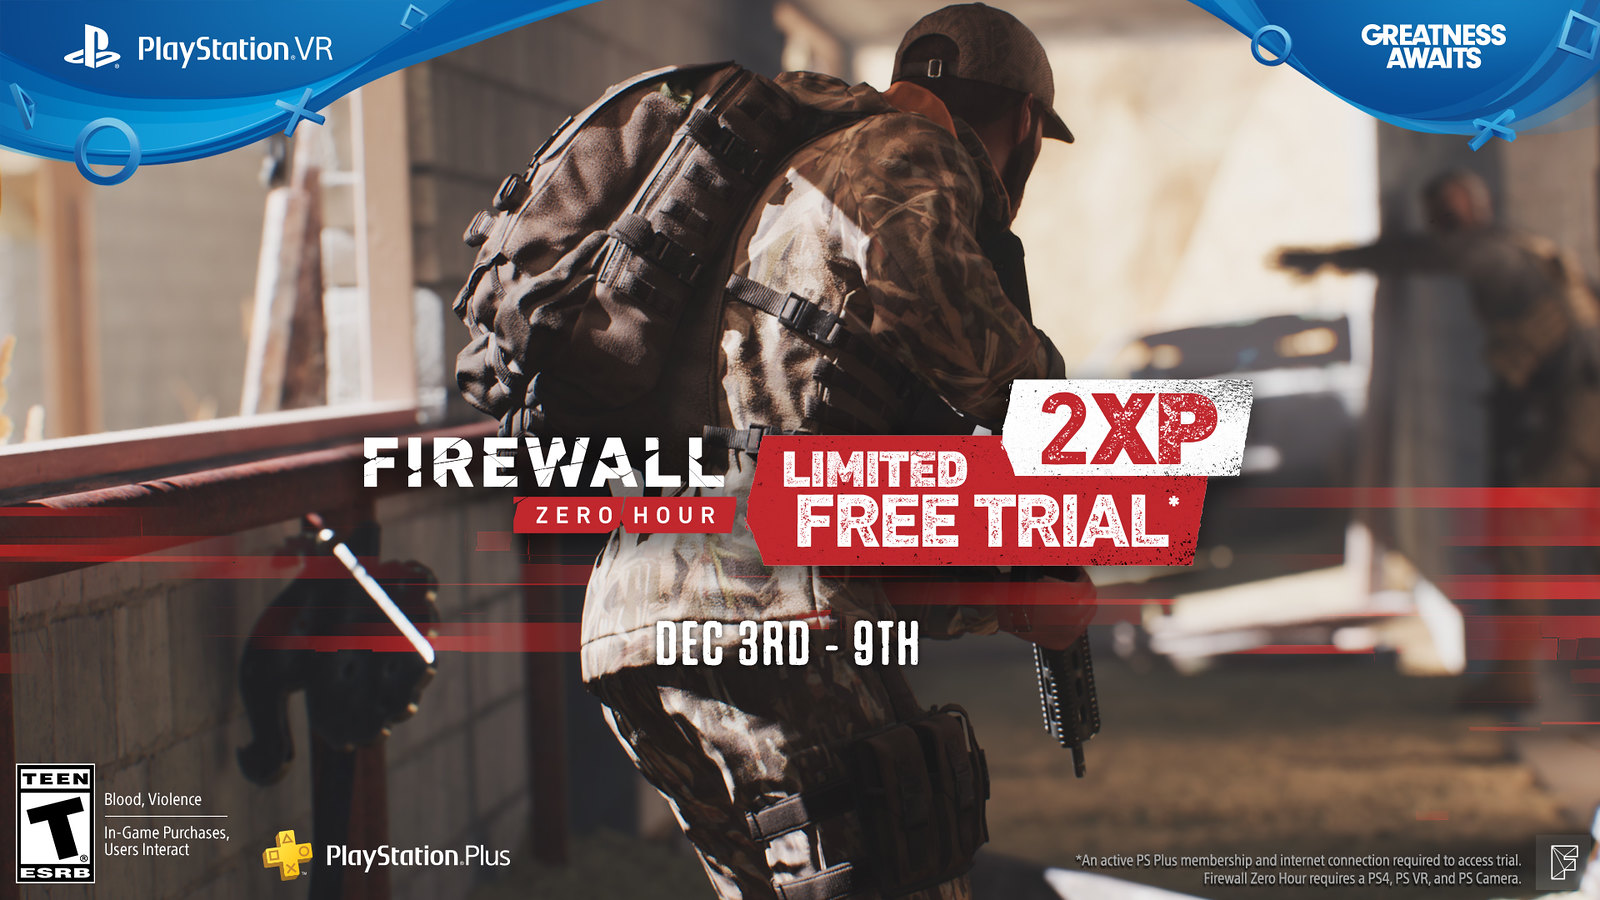 PlayStation Plus - Firewall Zero Hour